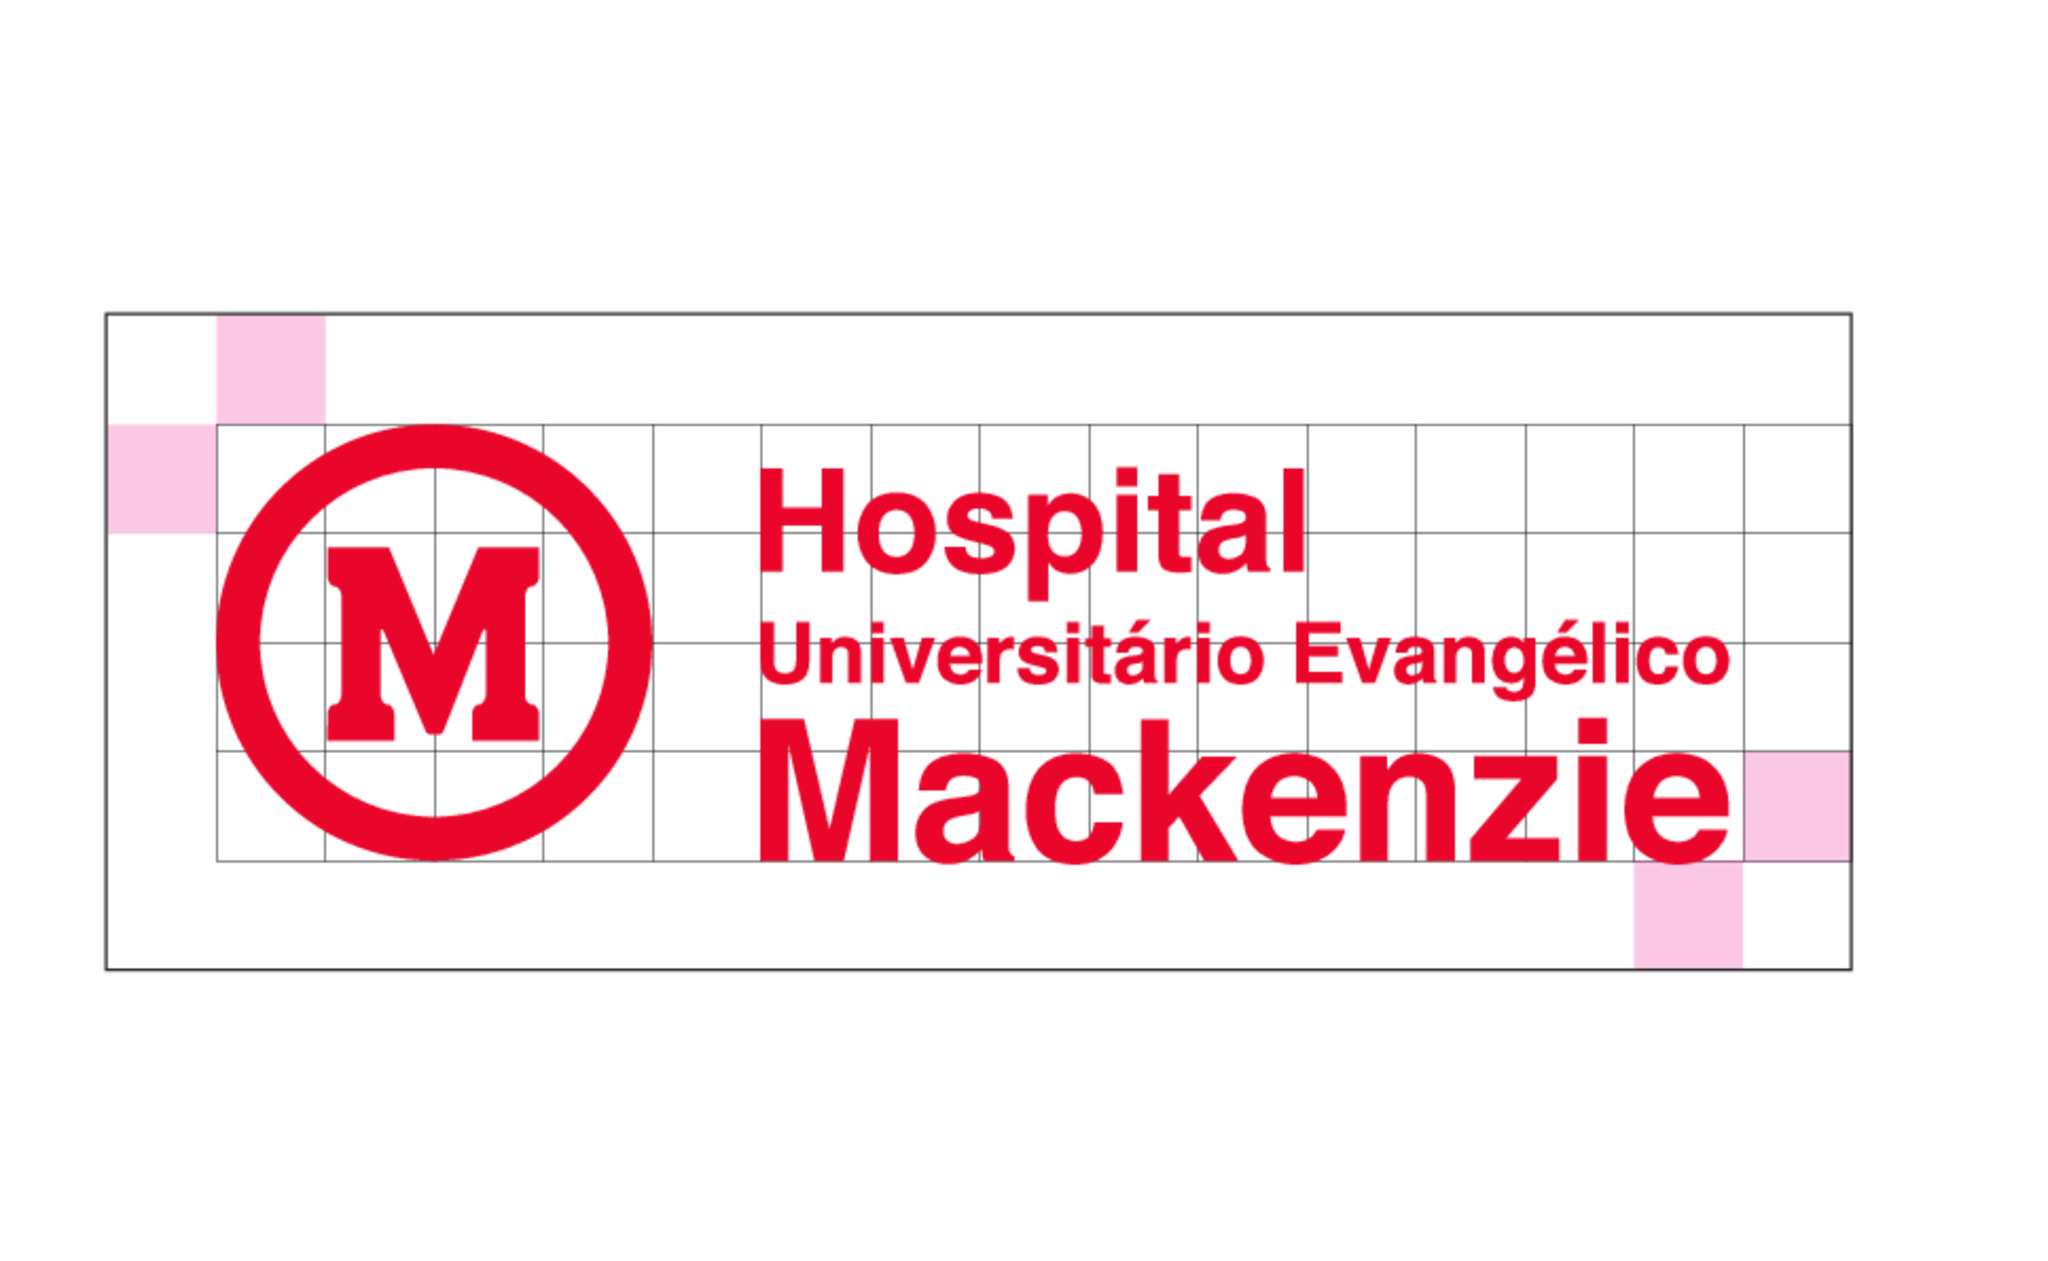 Logo do Hospital Presbiteriano Mackenzie